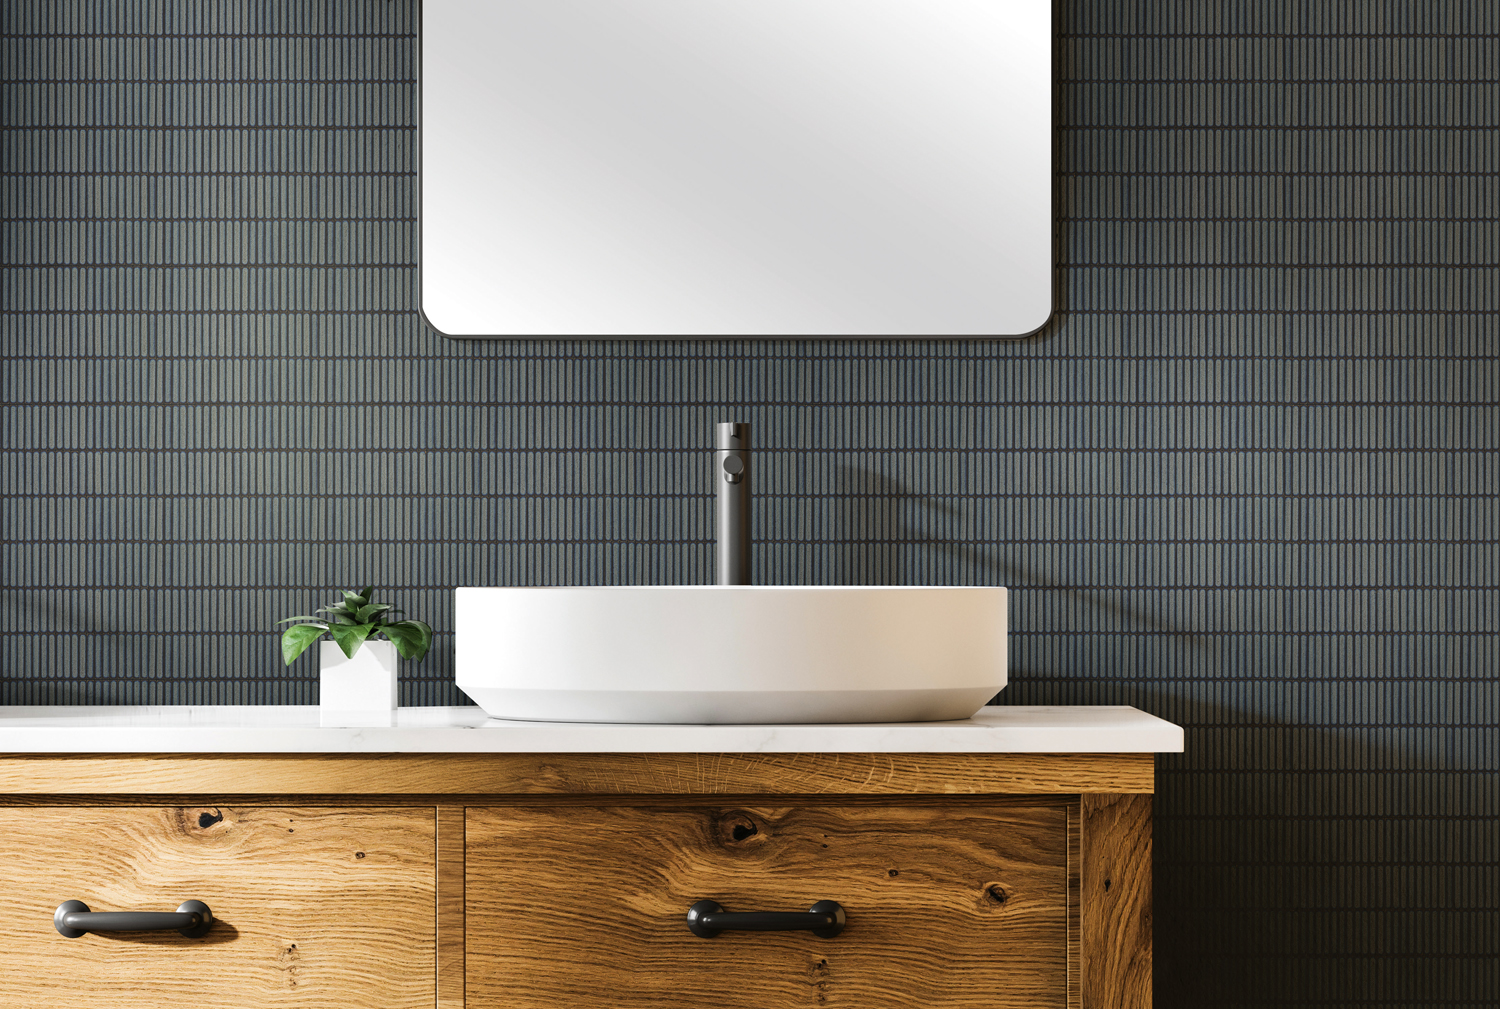 These sleek asian-influenced tiles are the ultimate in visual harmony